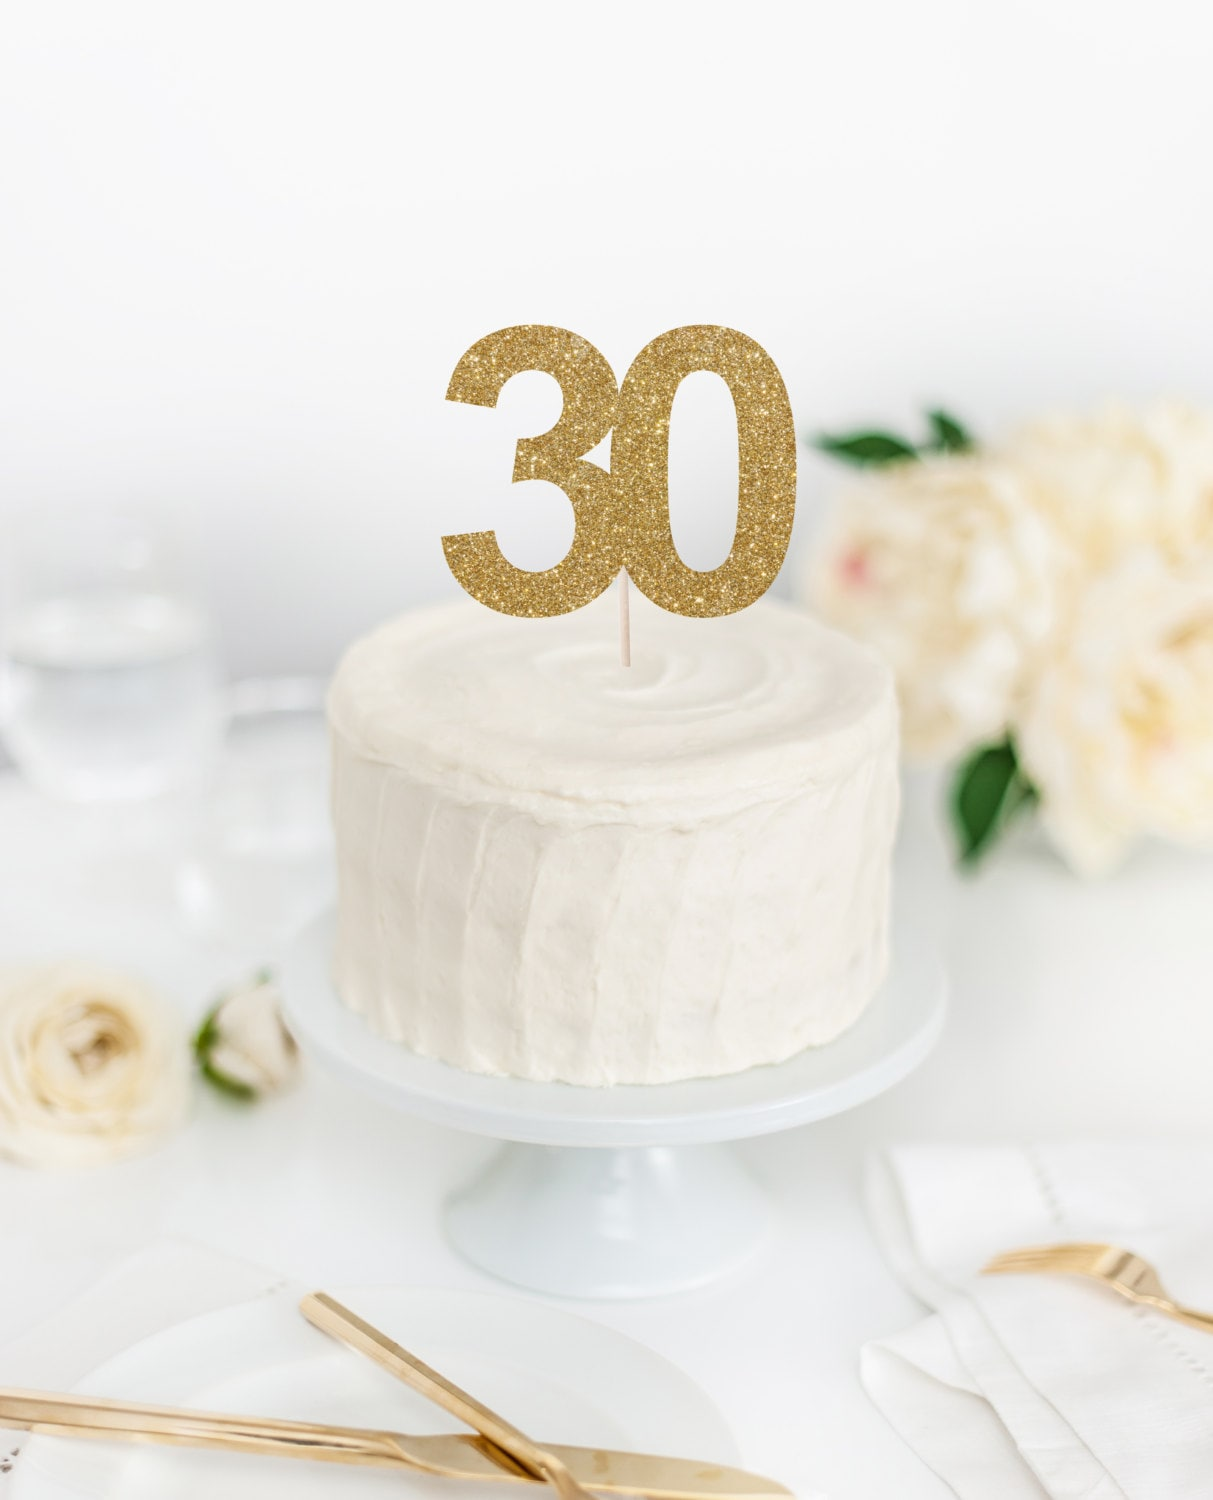 30 Cake Topper 30th Birthday Cake Topper Dirty Thirty Topper